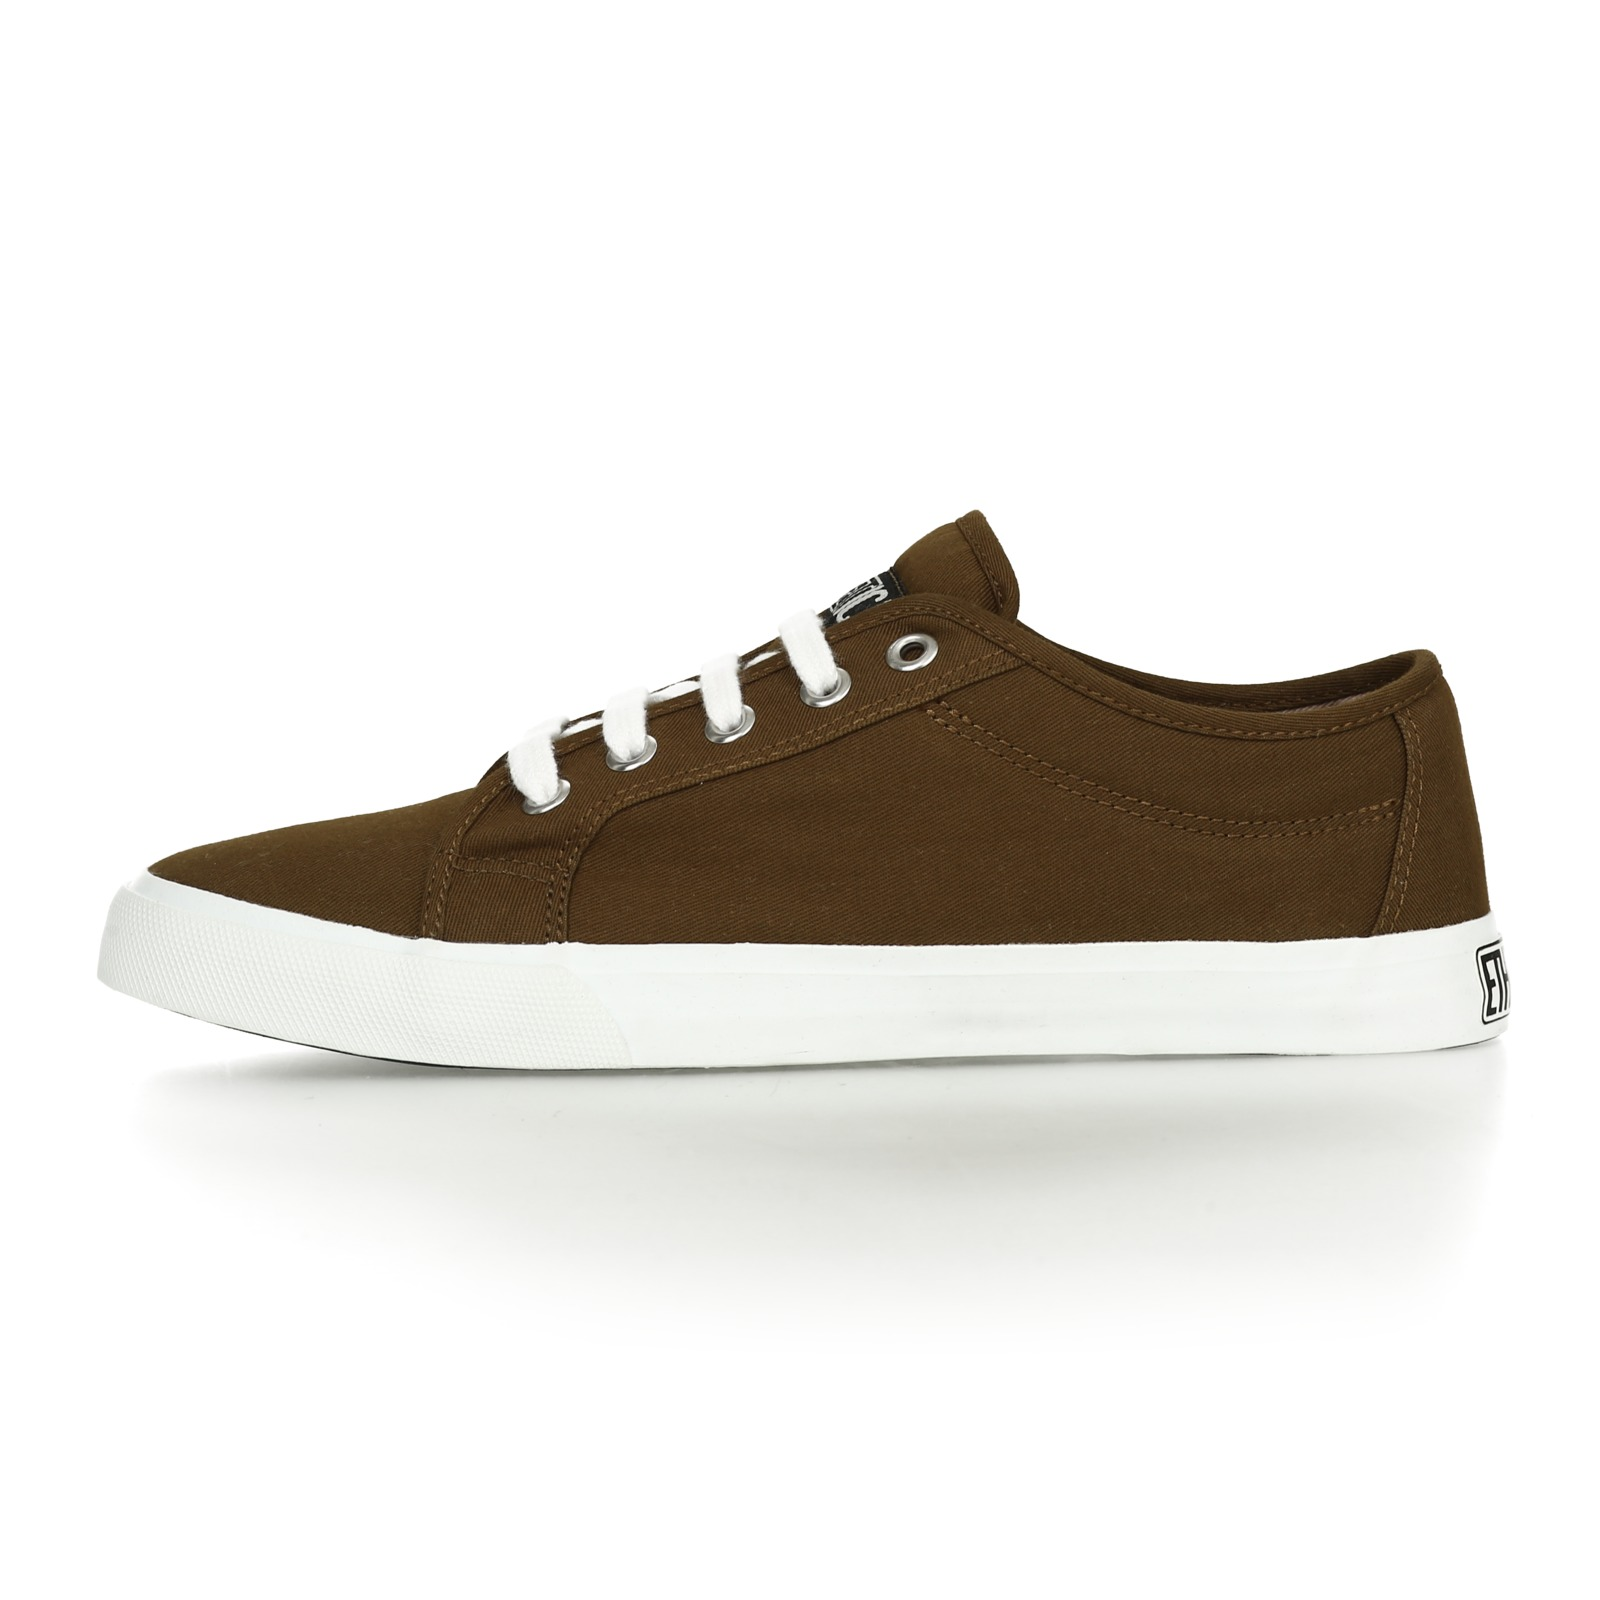 FAIR SKATER COLLECTION OLIVE GREEN